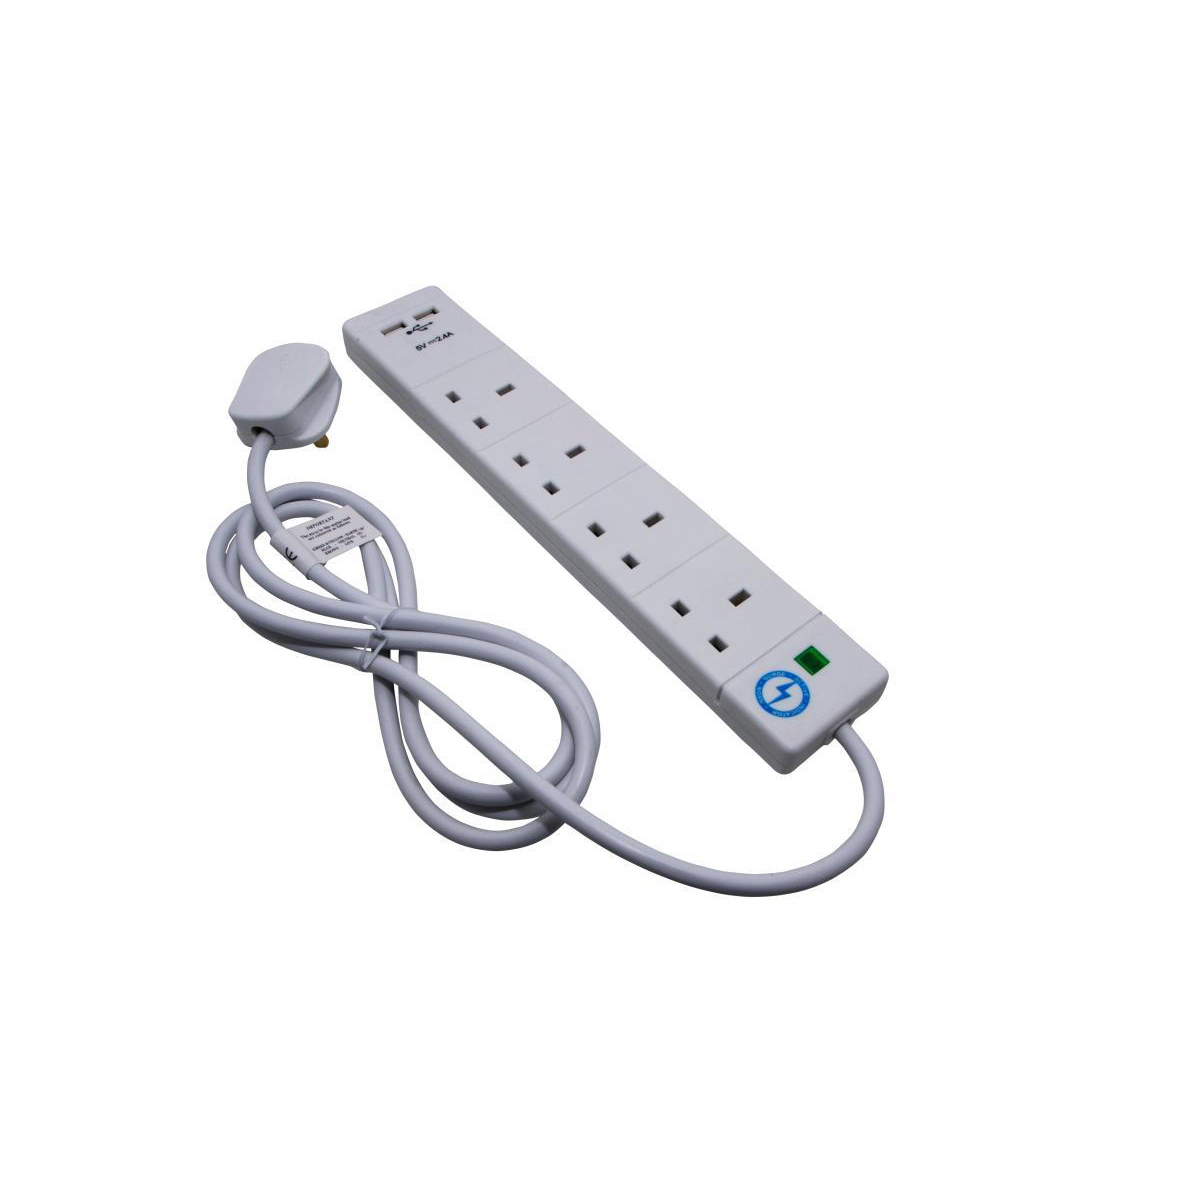 Cables & Adaptors SMJ Extension Lead 2-metre 4 Sockets 2 USB Charging Points Power Surge Indicator W170xD50xH405mm White